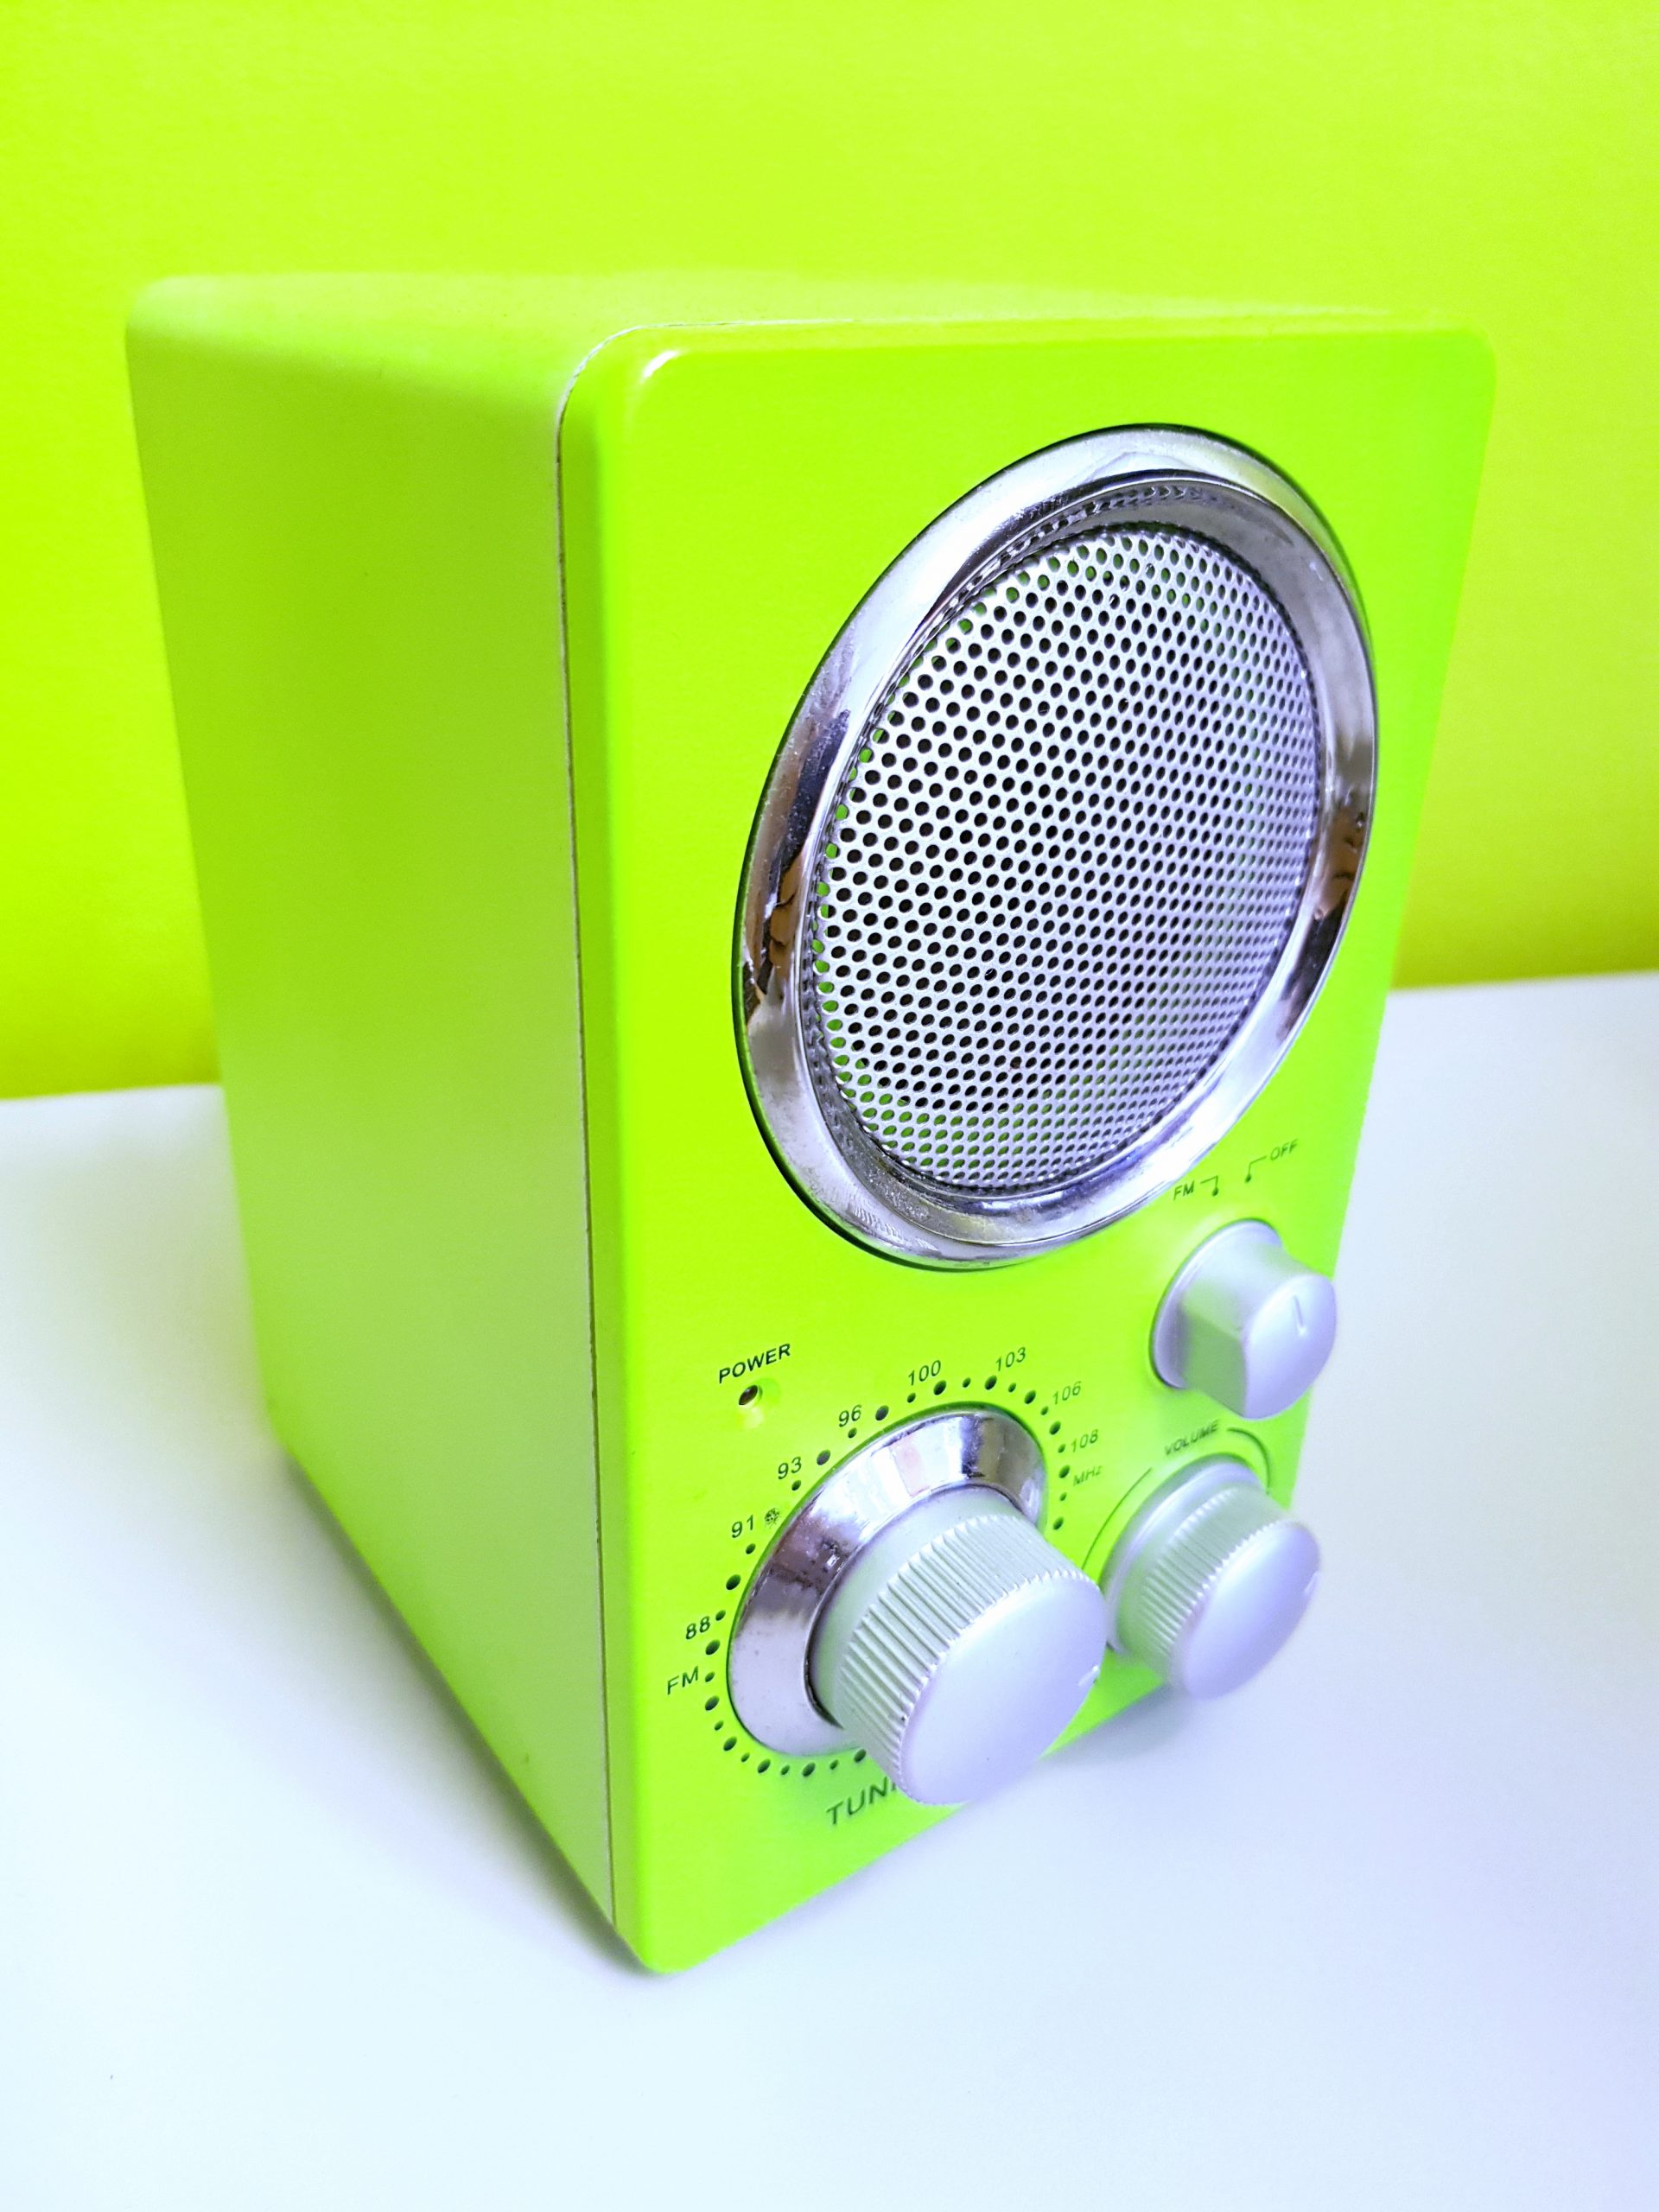 Green Item looking like radio